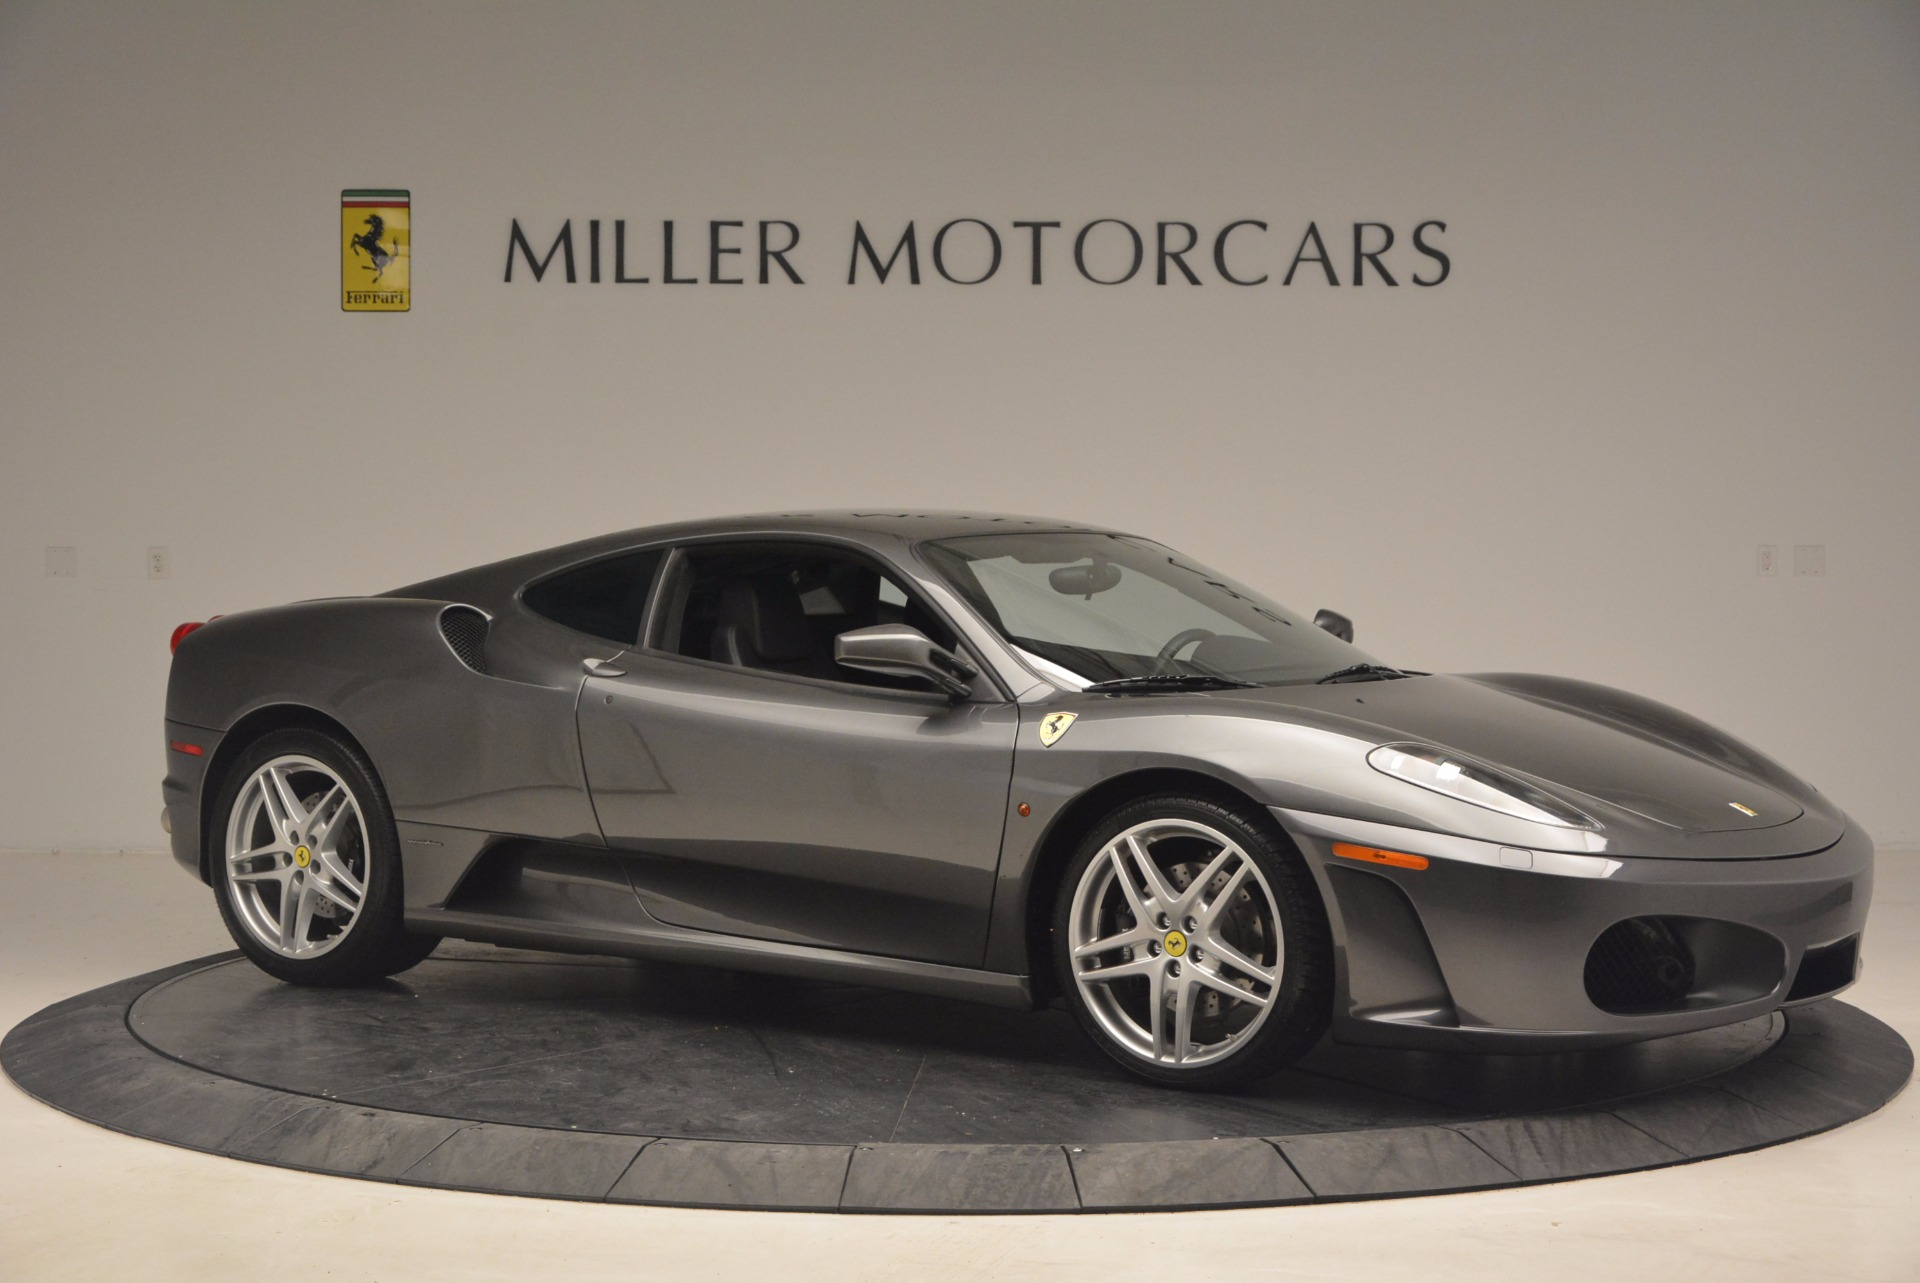 Used 2005 Ferrari F430 6-Speed Manual For Sale In Greenwich, CT. Alfa Romeo of Greenwich, 4391 1286_p10